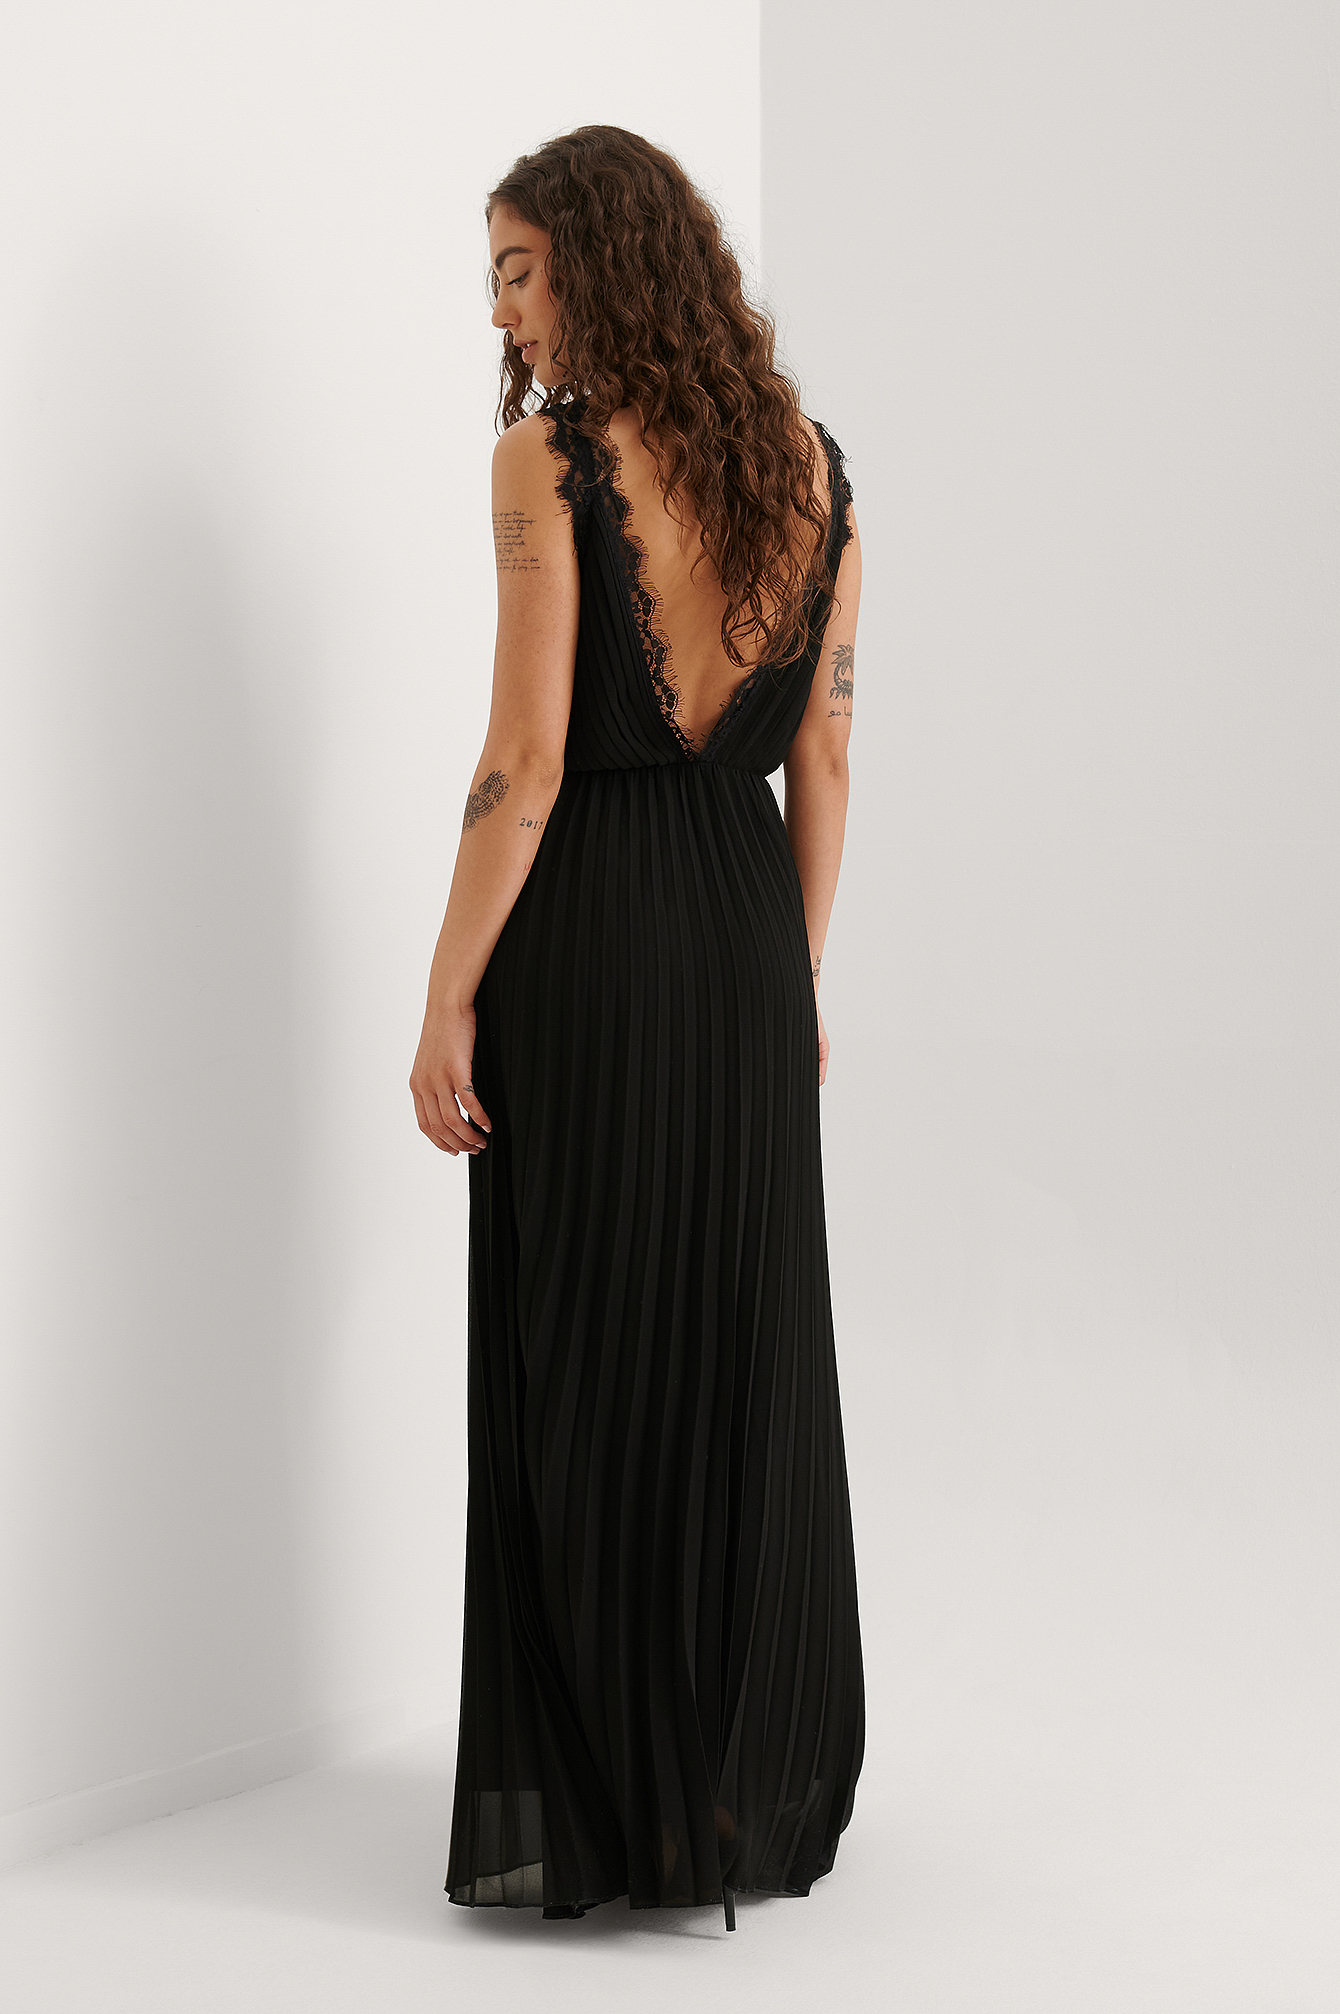 Black Chiffon Volume Maxi Dress